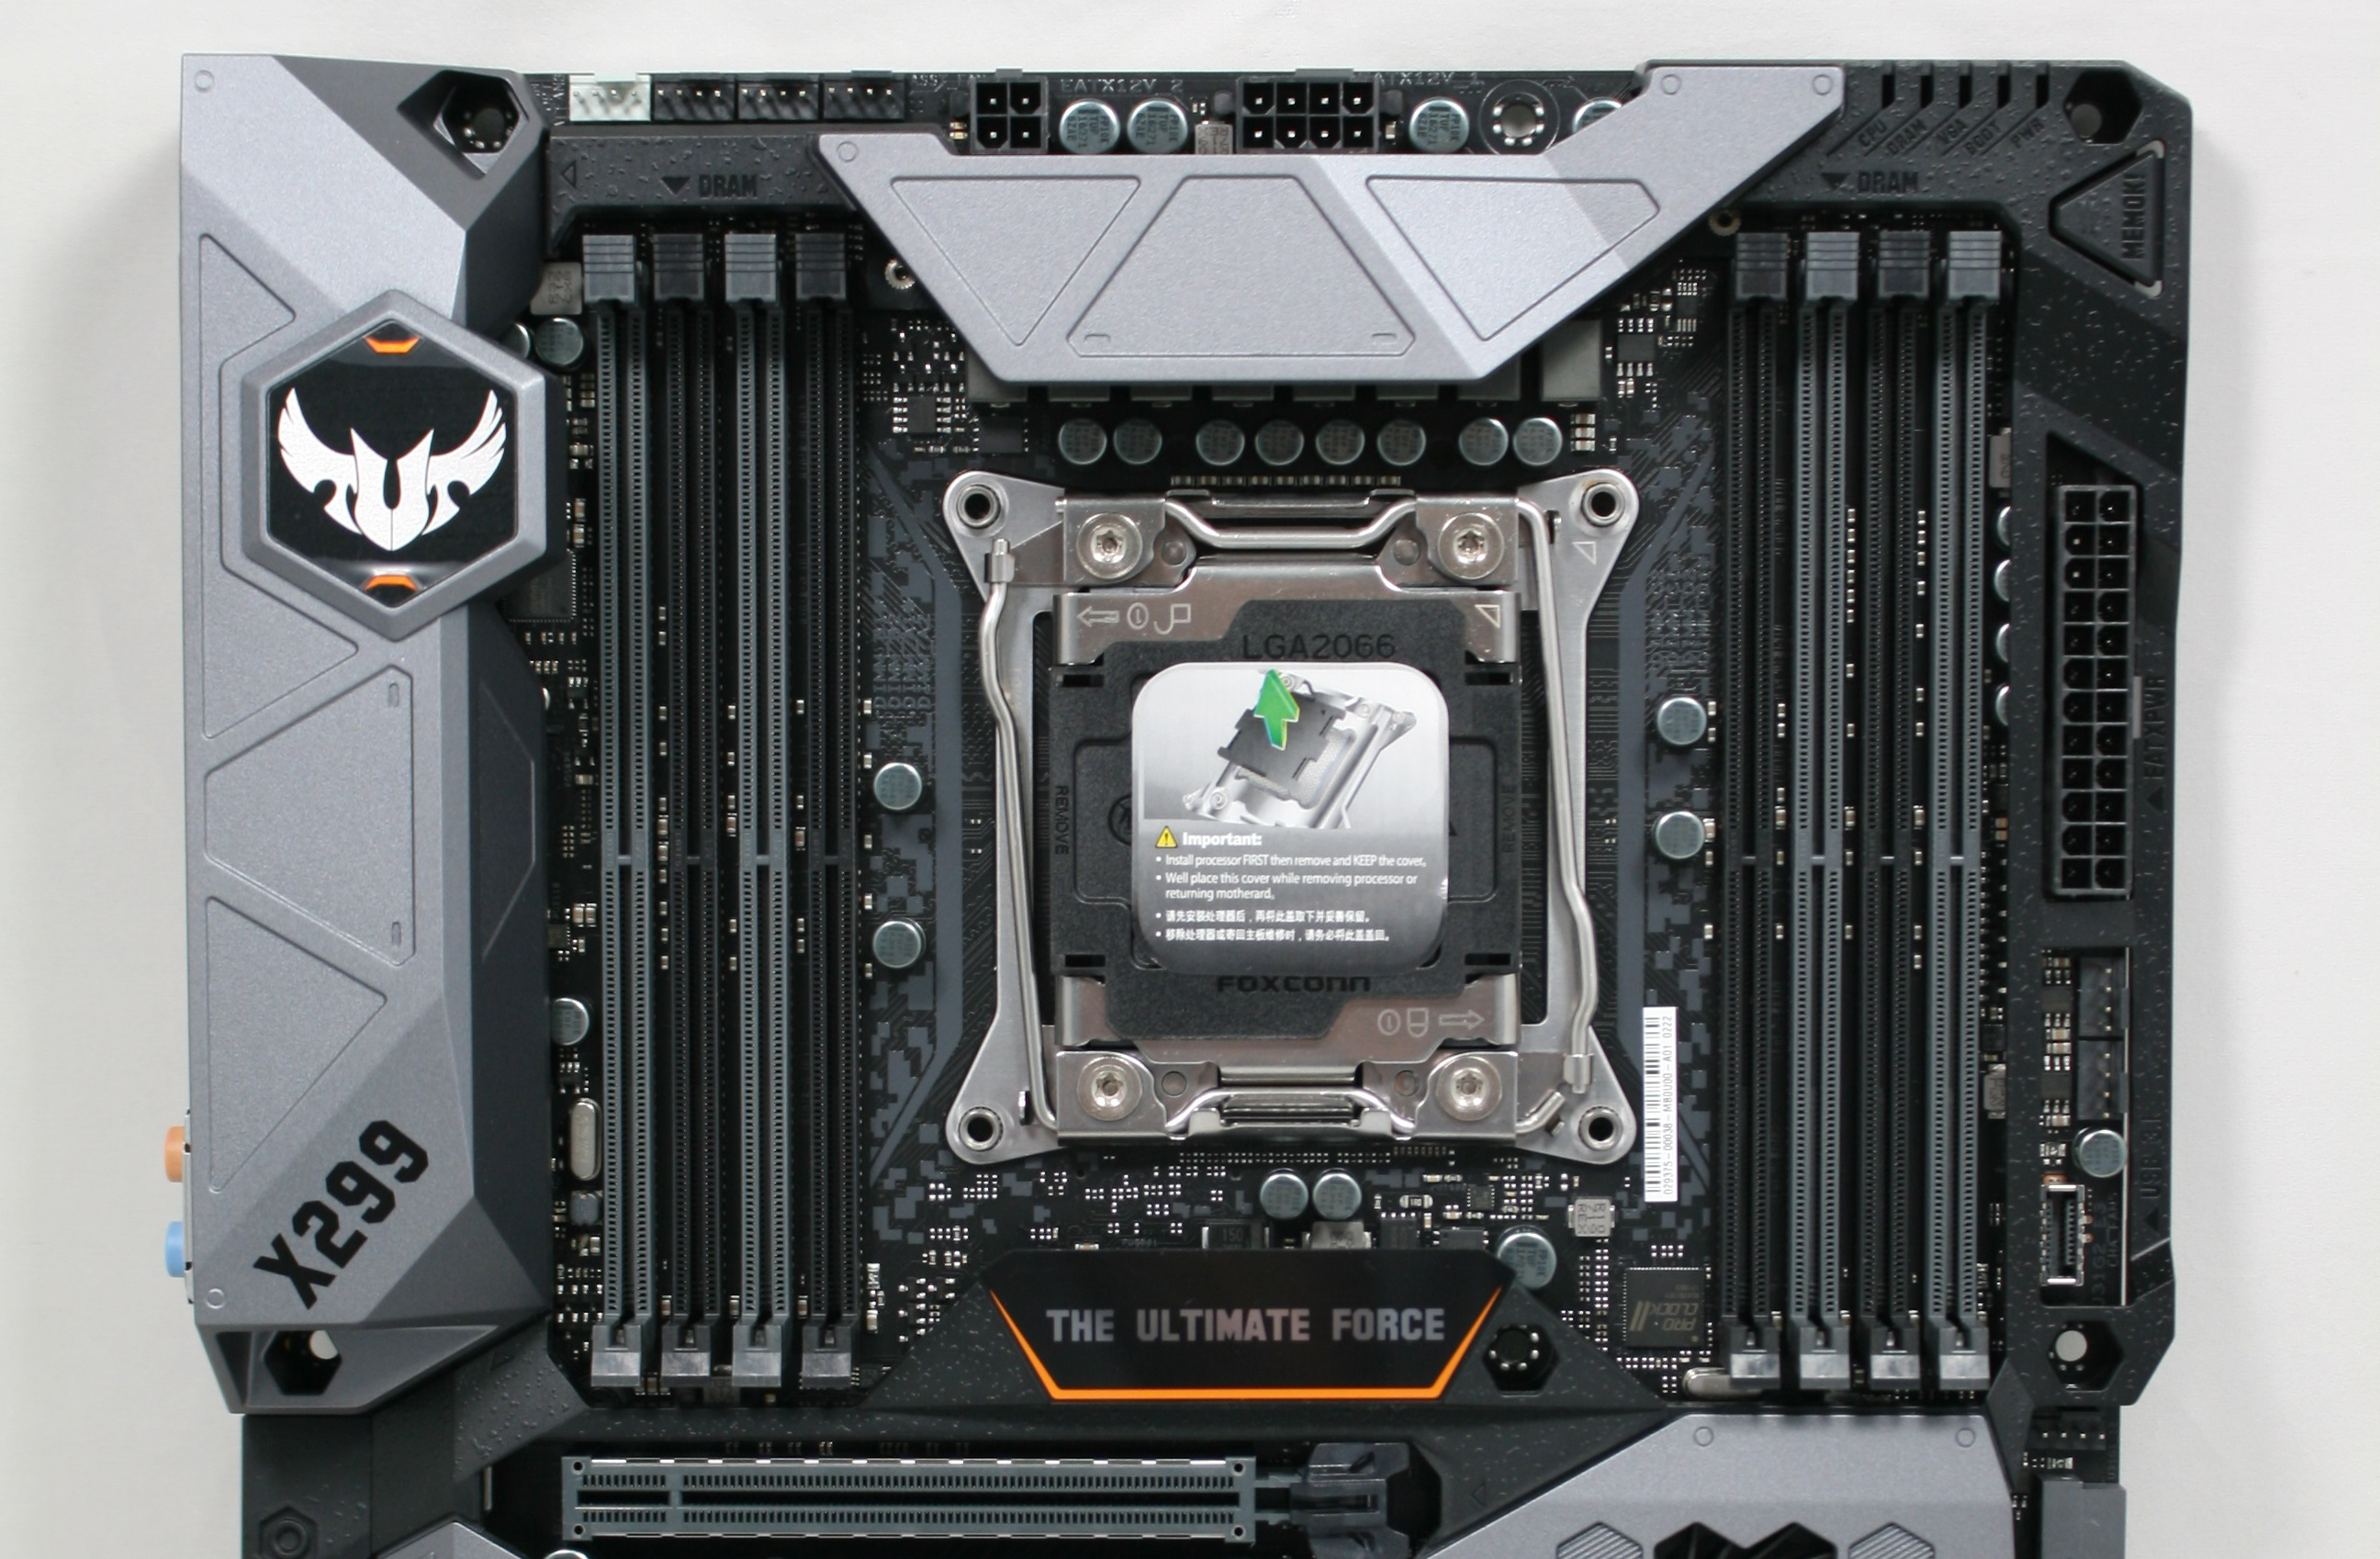 Visual Inspection - The ASUS TUF X299 Mark I Motherboard